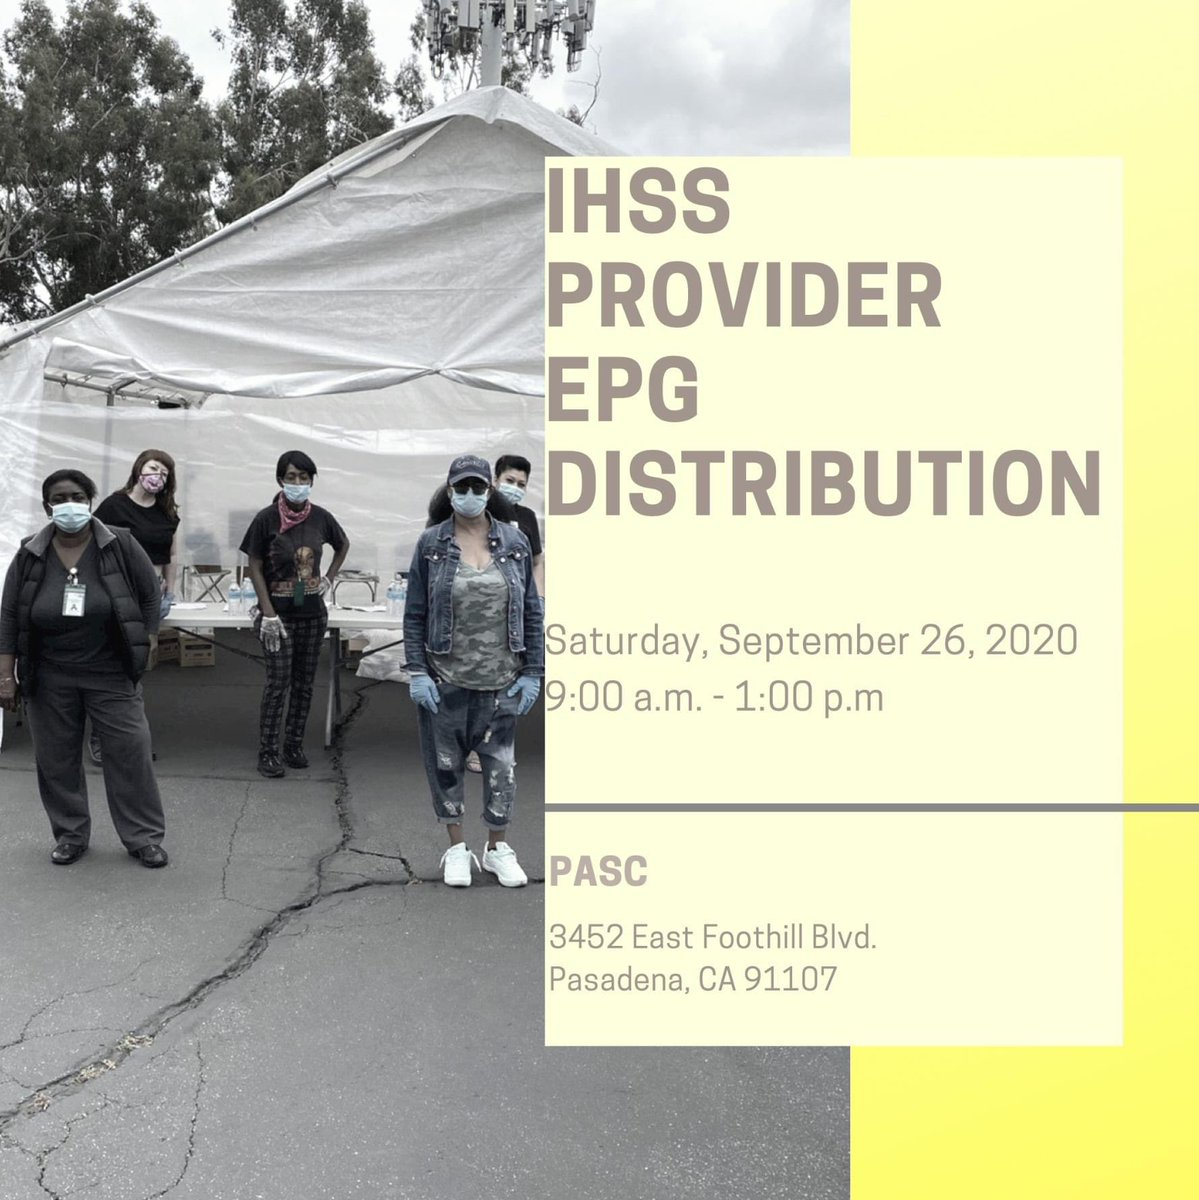 these distributions will be held. They are not the ones distributing EPG; they are simply hosting the events.  If you have questions, please call (877) 565-4477, press 2 and then 4.  #pasc #pascla #ihss #consumers #providers #losangeles #LACounty https://t.co/igZYlIR9Cc